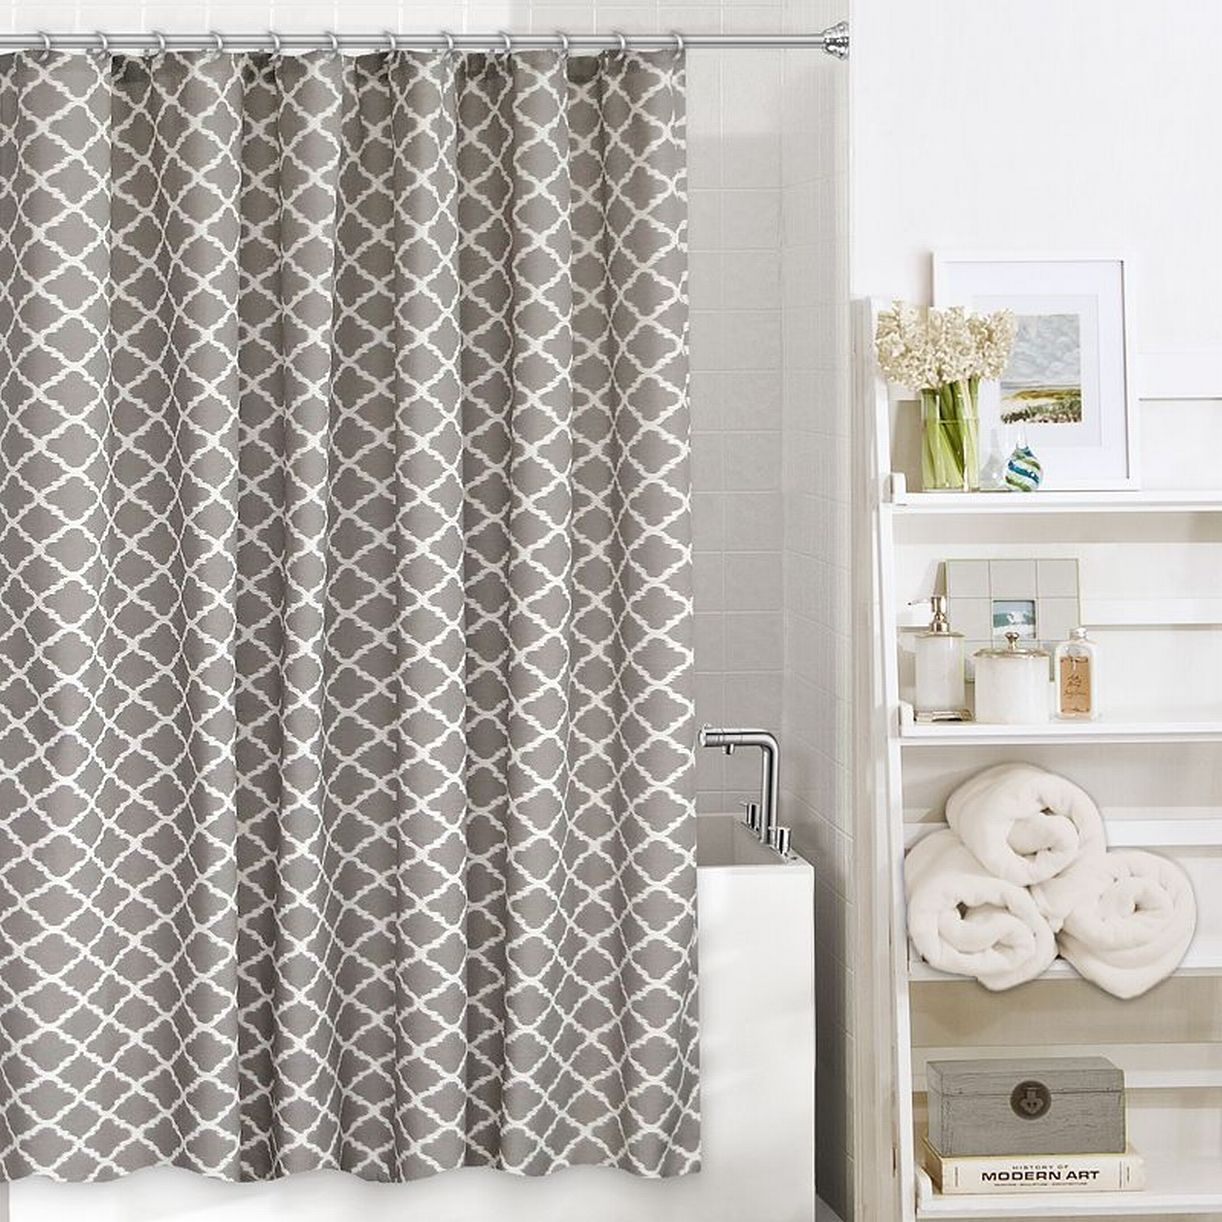 Find home classics shower curtain at ShopStyle. Shop the latest collection of home classics shower curtain from the most popular stores - all in one. Skip to Content Kohl's Home Classics Forest Shower Curtain $ $ Get .